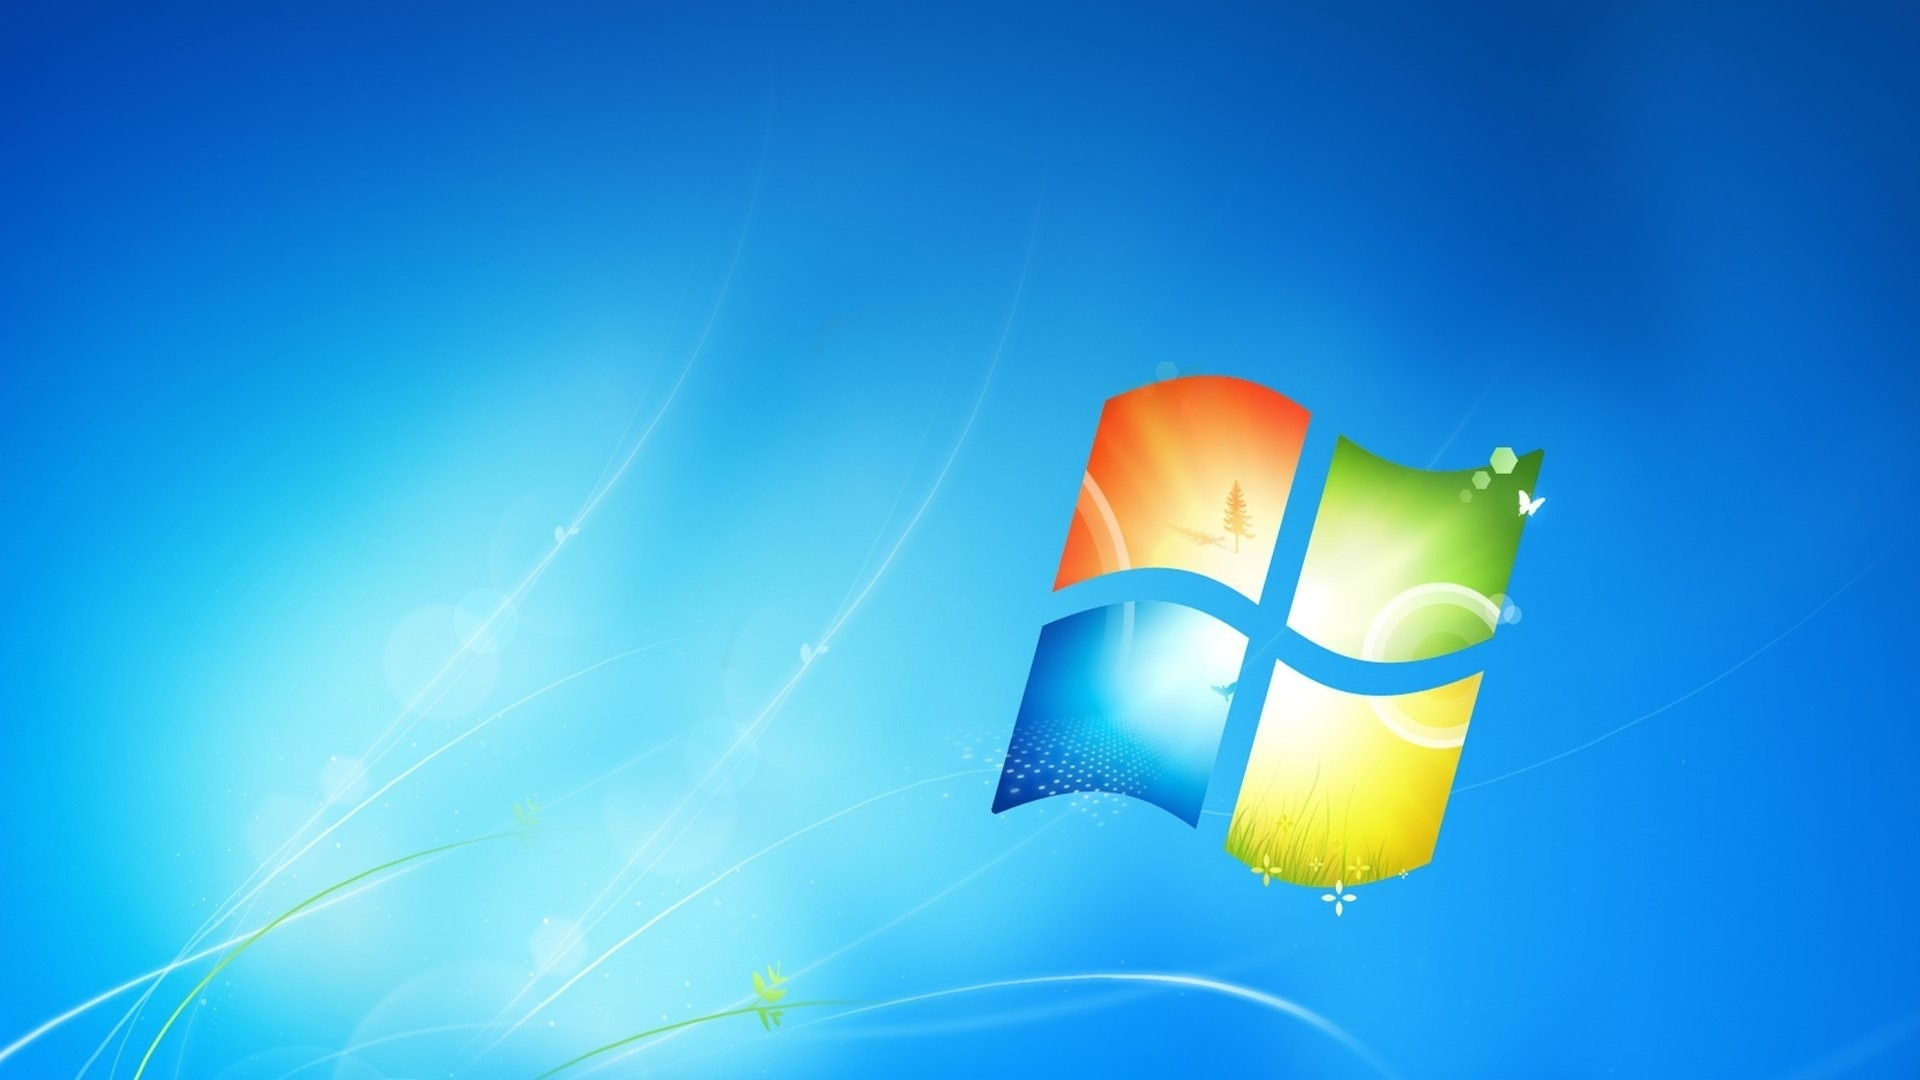 windows 7 wallpaper hd 1920x1080 (54+ images)